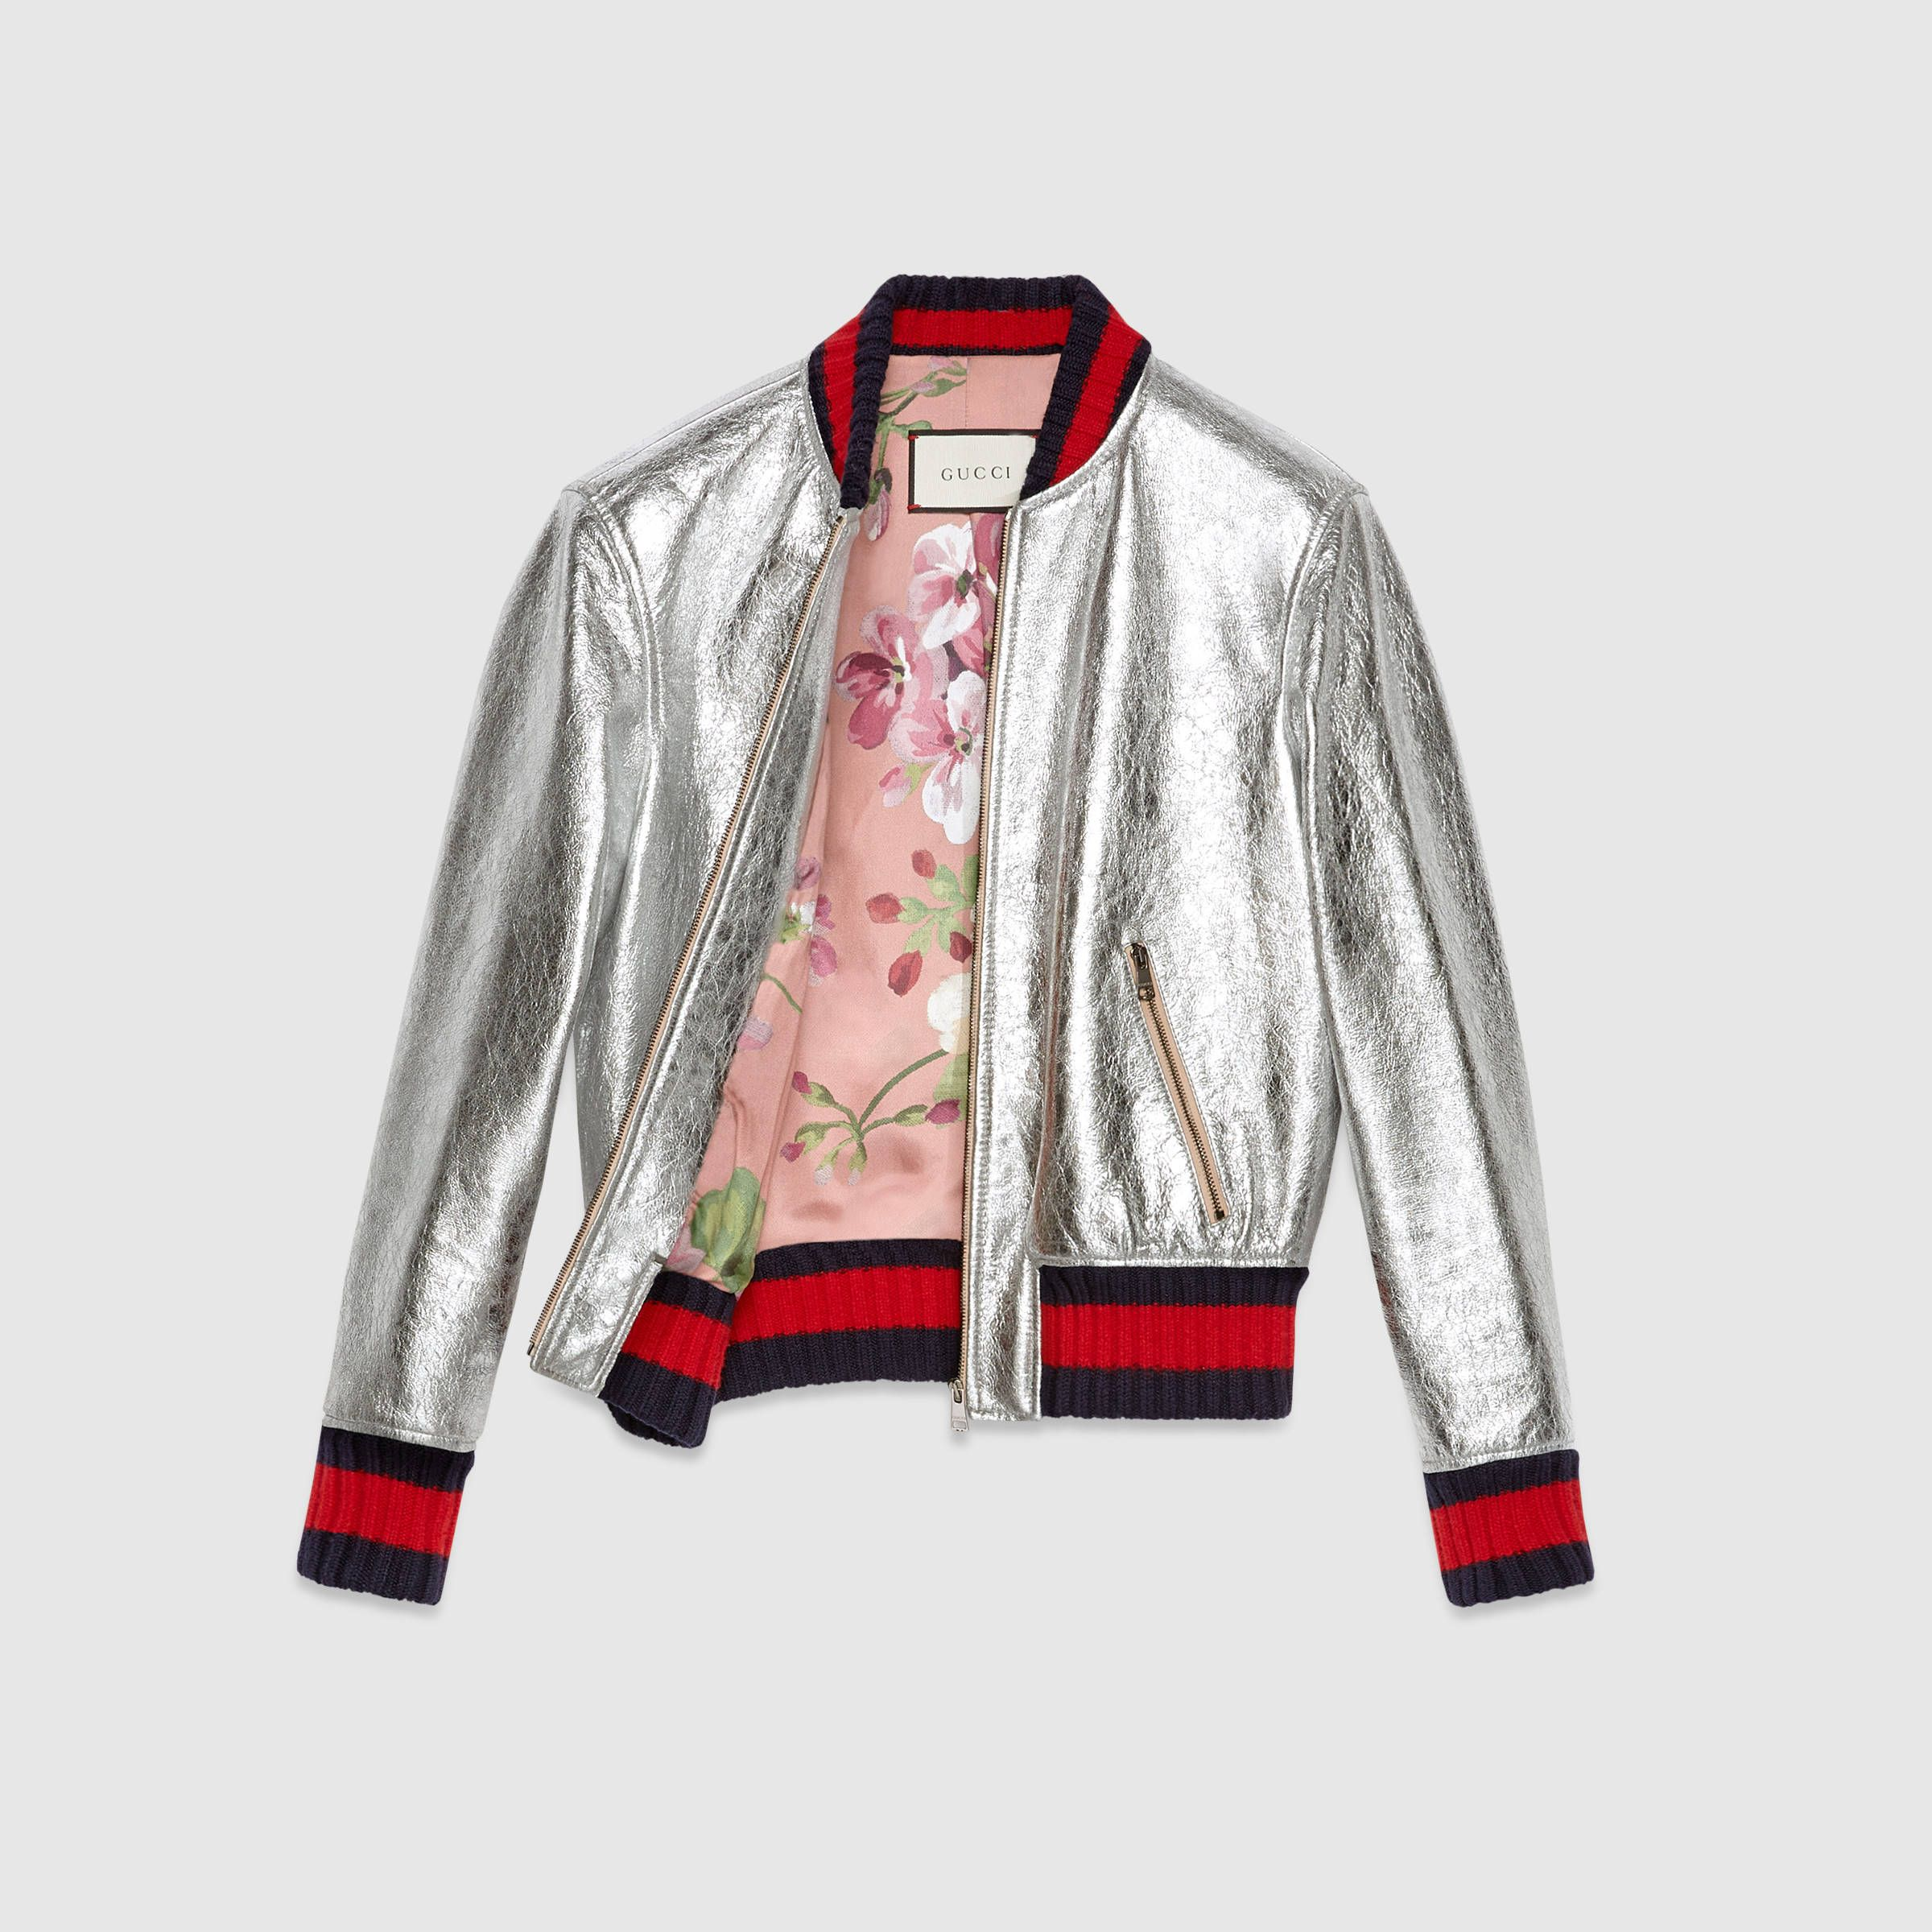 Gucci Crackle Leather Bomber Jacket White Bomber Jacket White Leather Jacket Leather Flight Jacket [ 2400 x 2400 Pixel ]